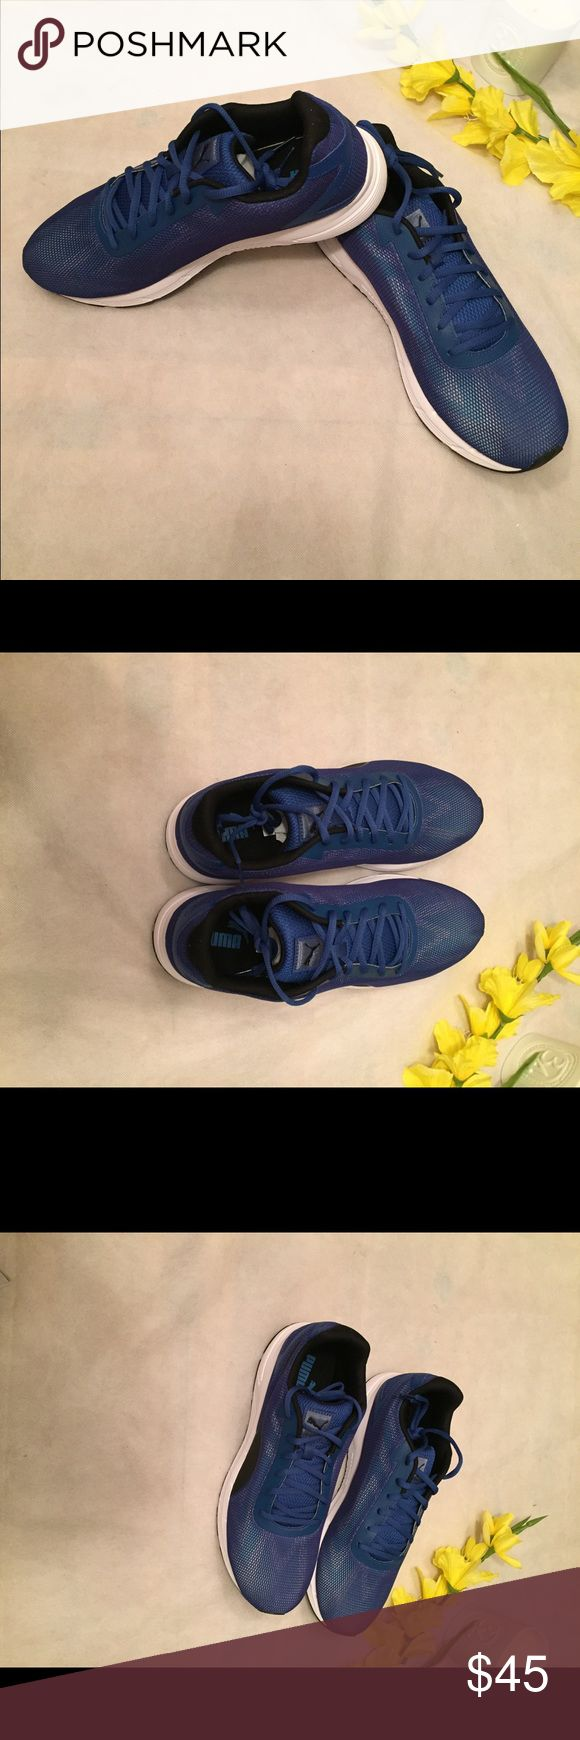 New men's Puma Running Shoes Size 10.5 Brand new men's Puma Running Shoes comes without a box see pictures for details any questions please send me a comment Puma Shoes Sneakers